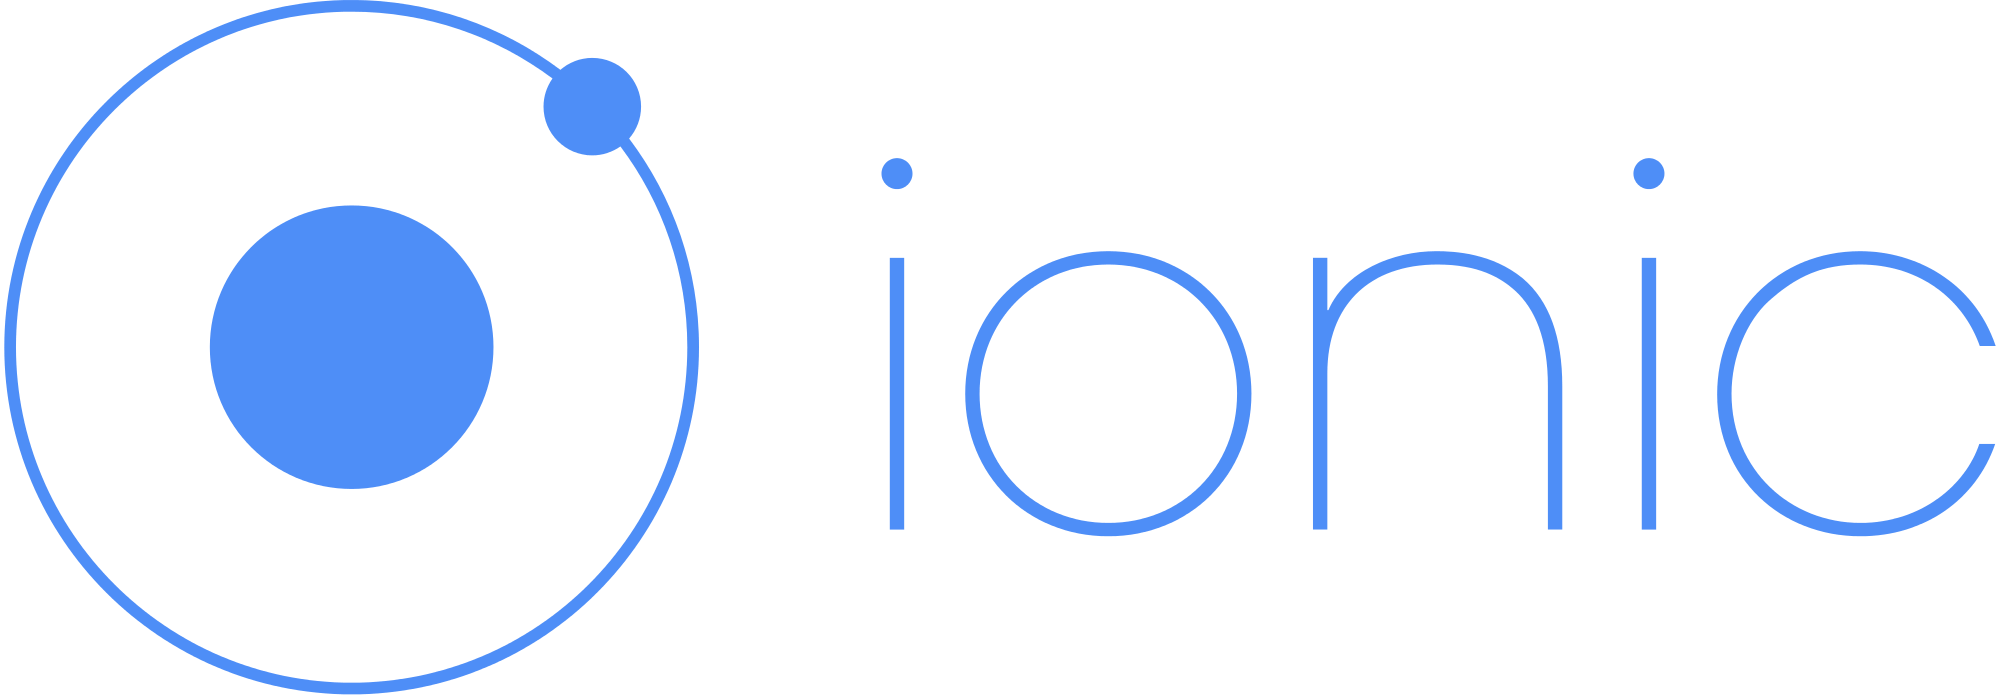 Ionic, iOS development, iPhone app, apple app development, iOS application